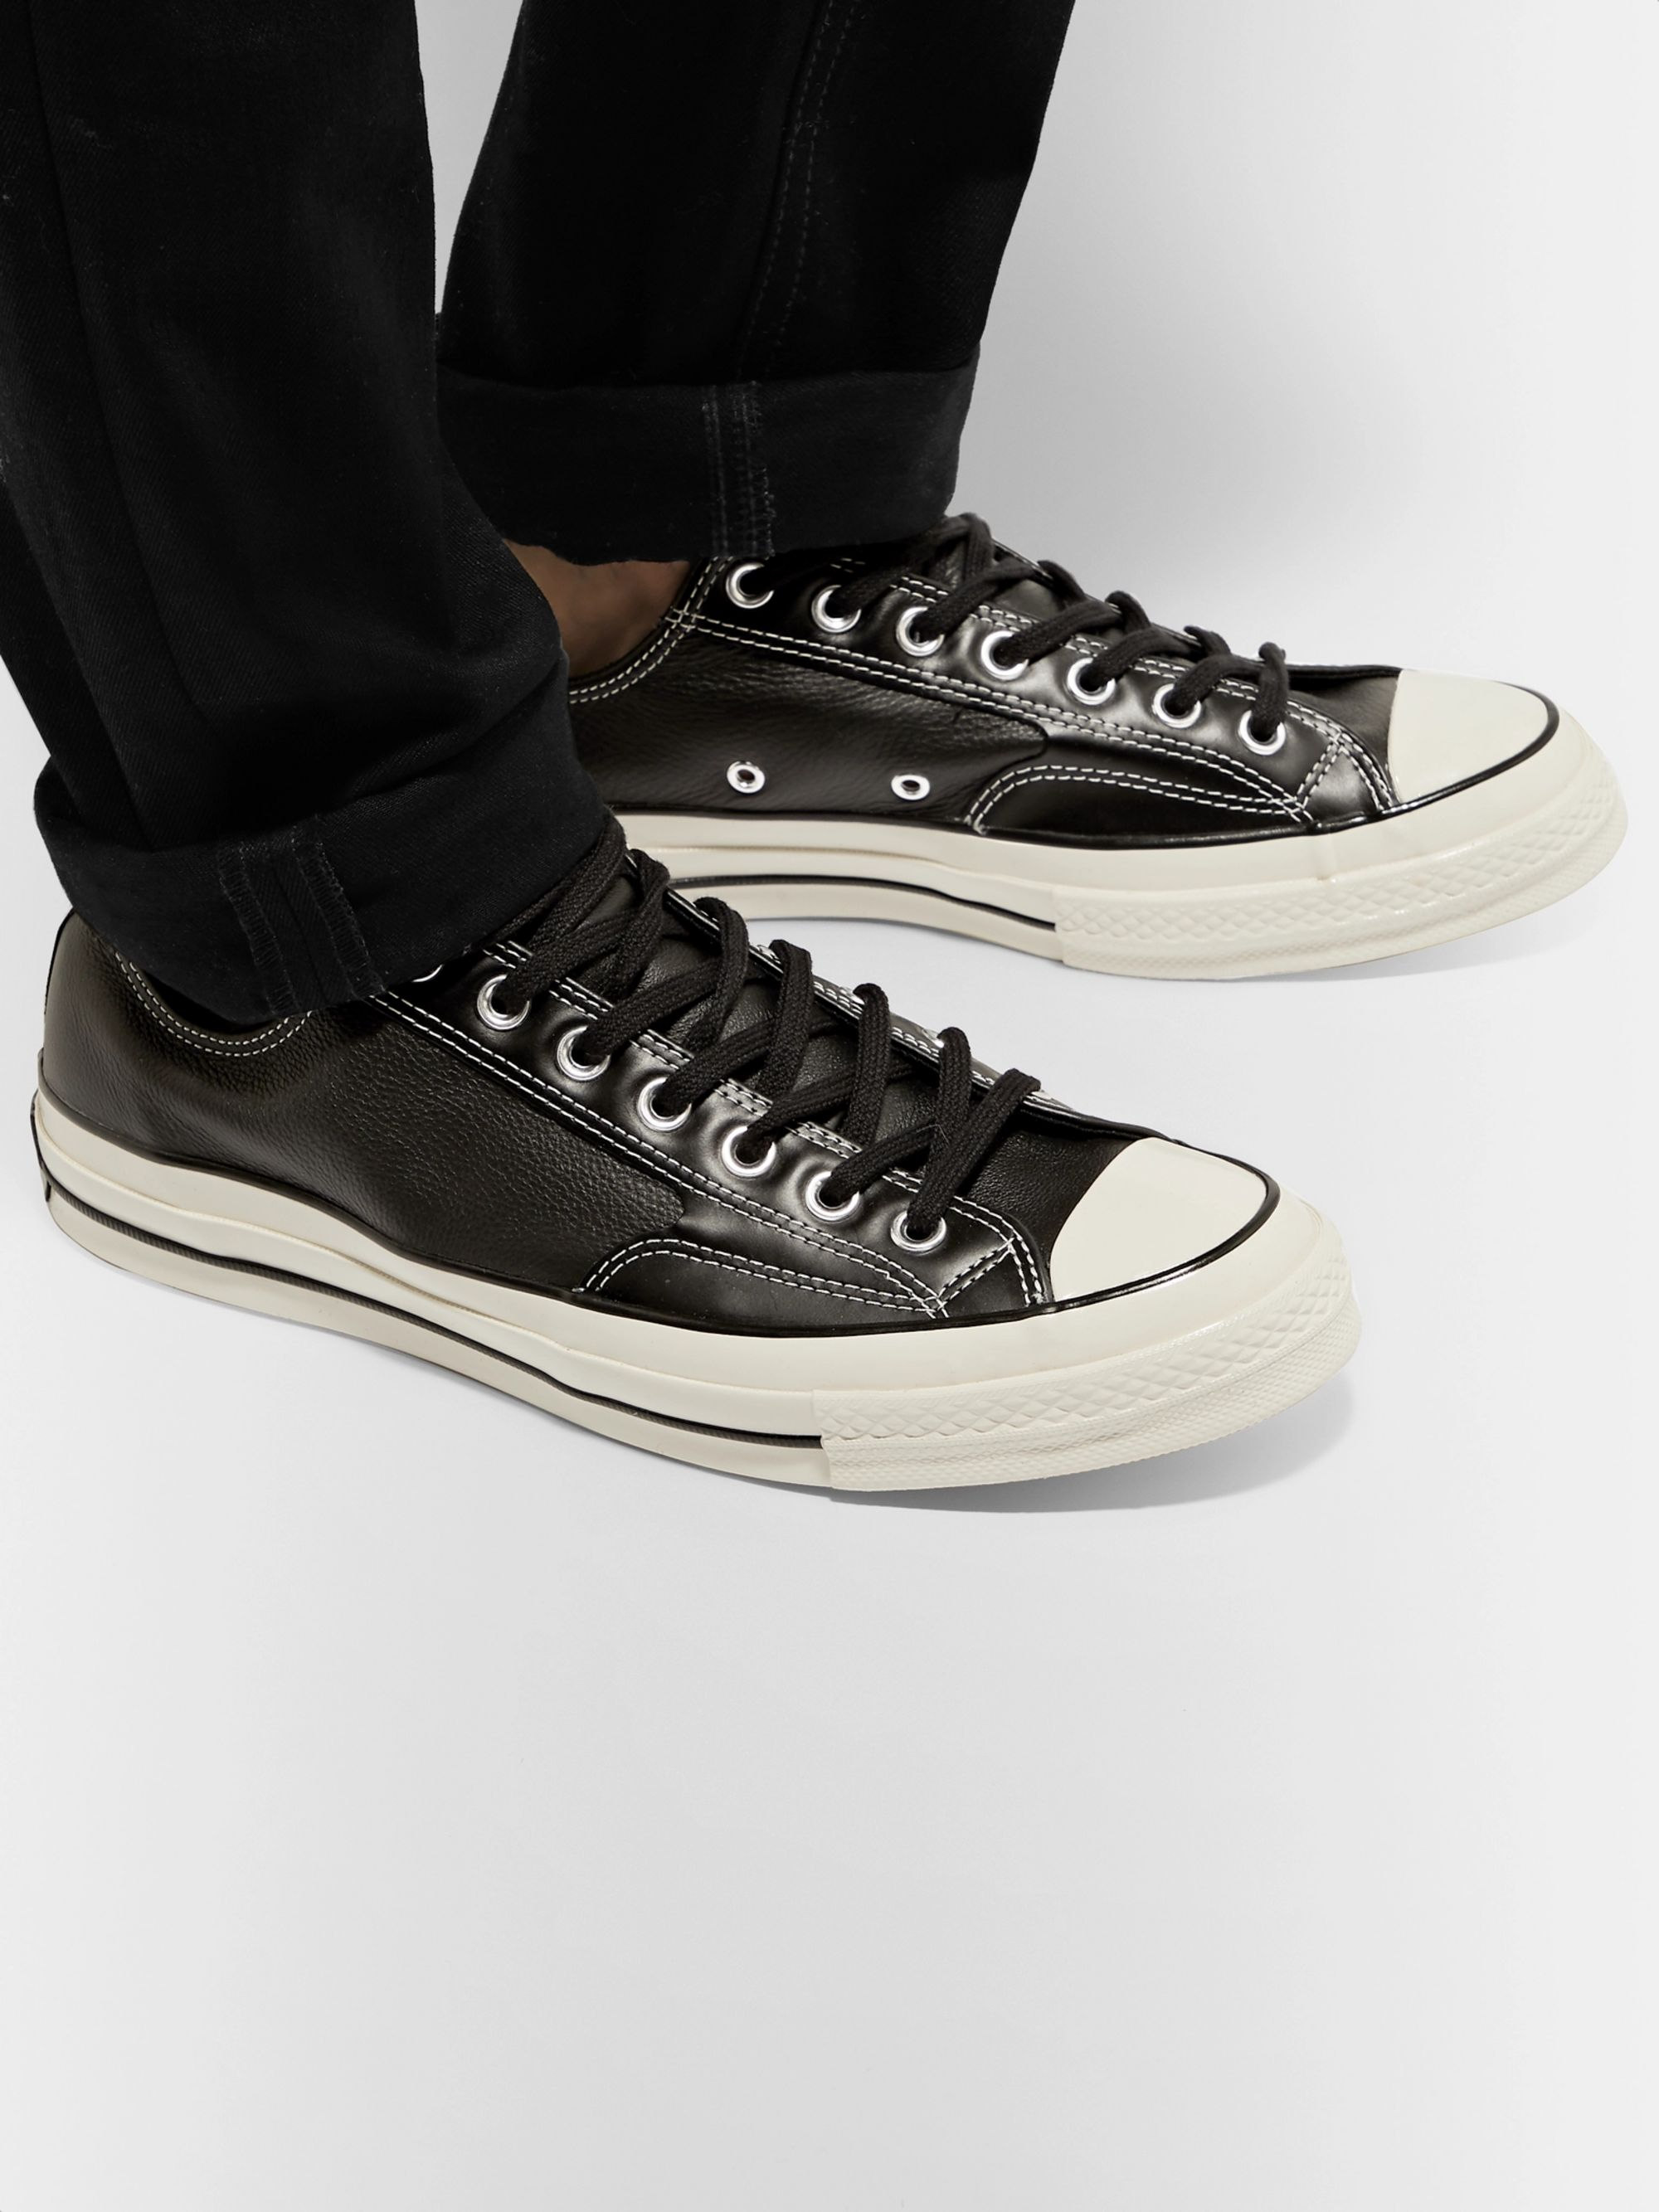 Converse 1970s Chuck Taylor All Star Full-Grain Leather Sneakers